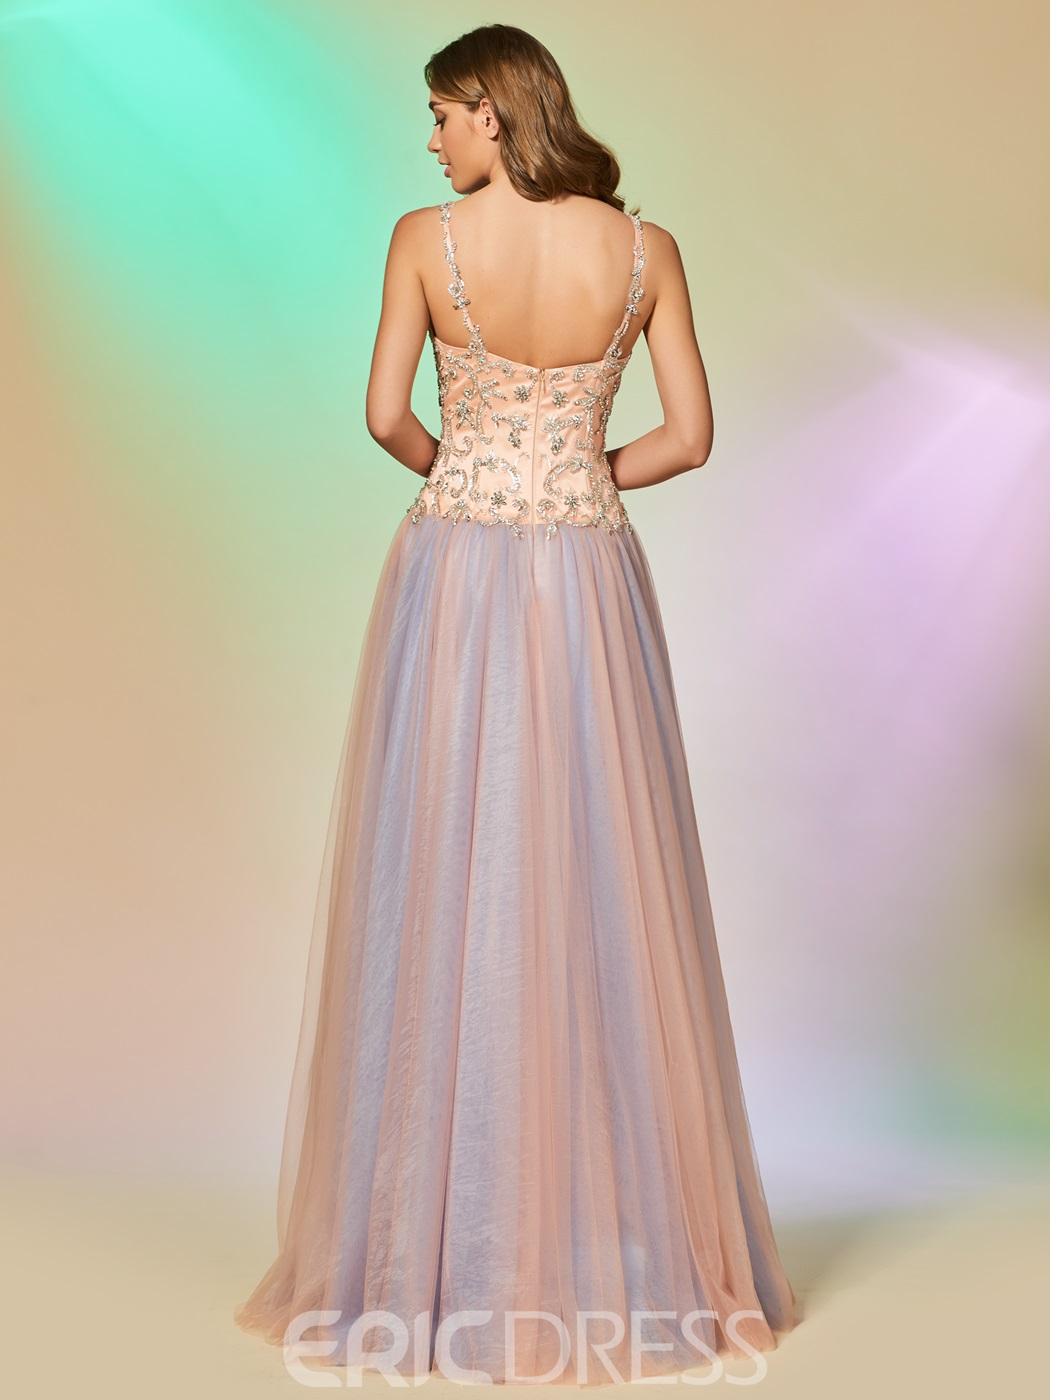 Ericdress A Line Spaghetti Straps Long Prom Dress With Beadings